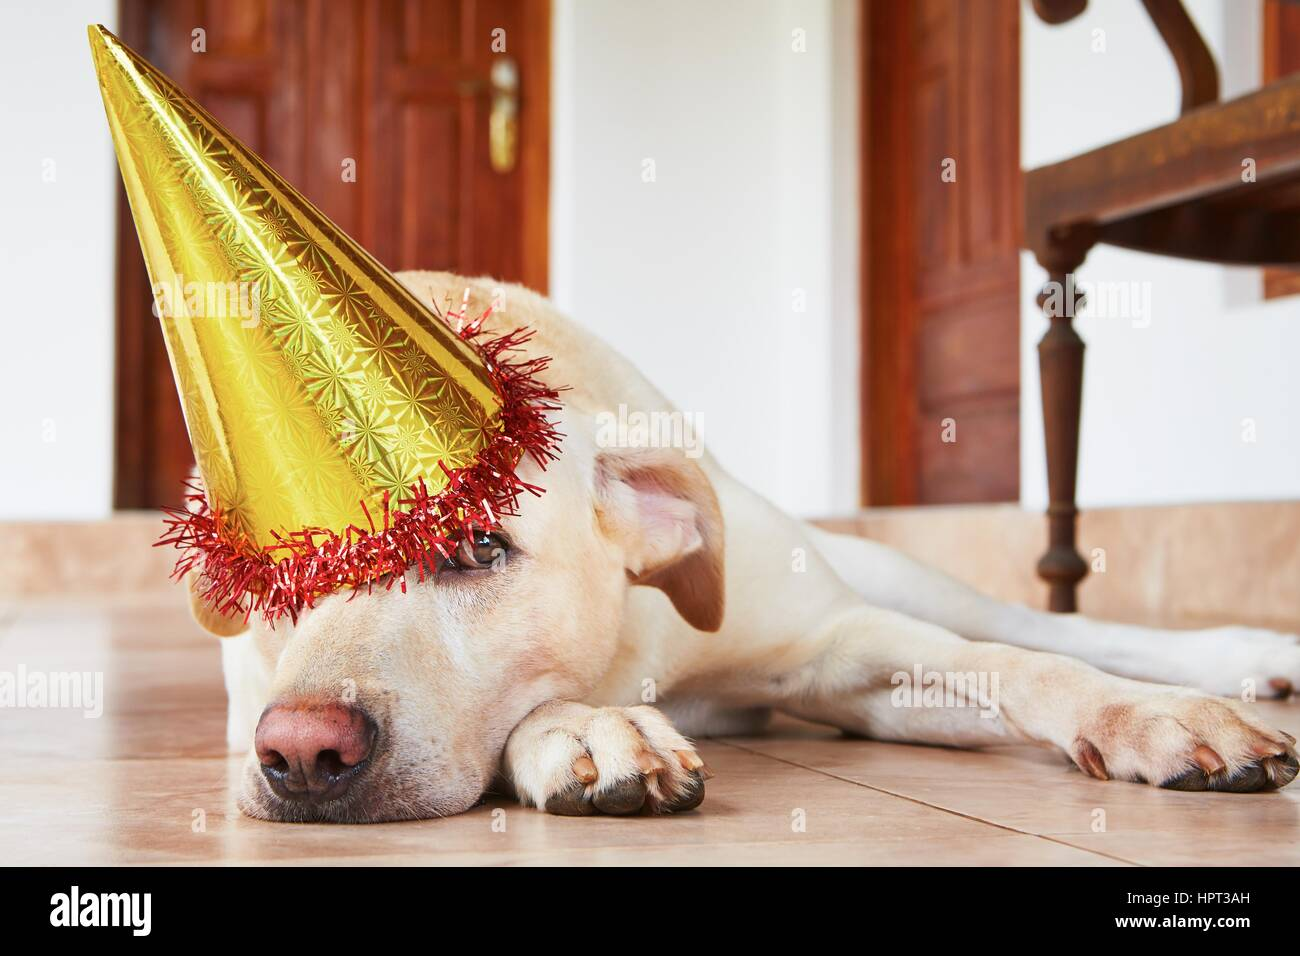 Cute labrador retriever is wearing party hat - Stock Image